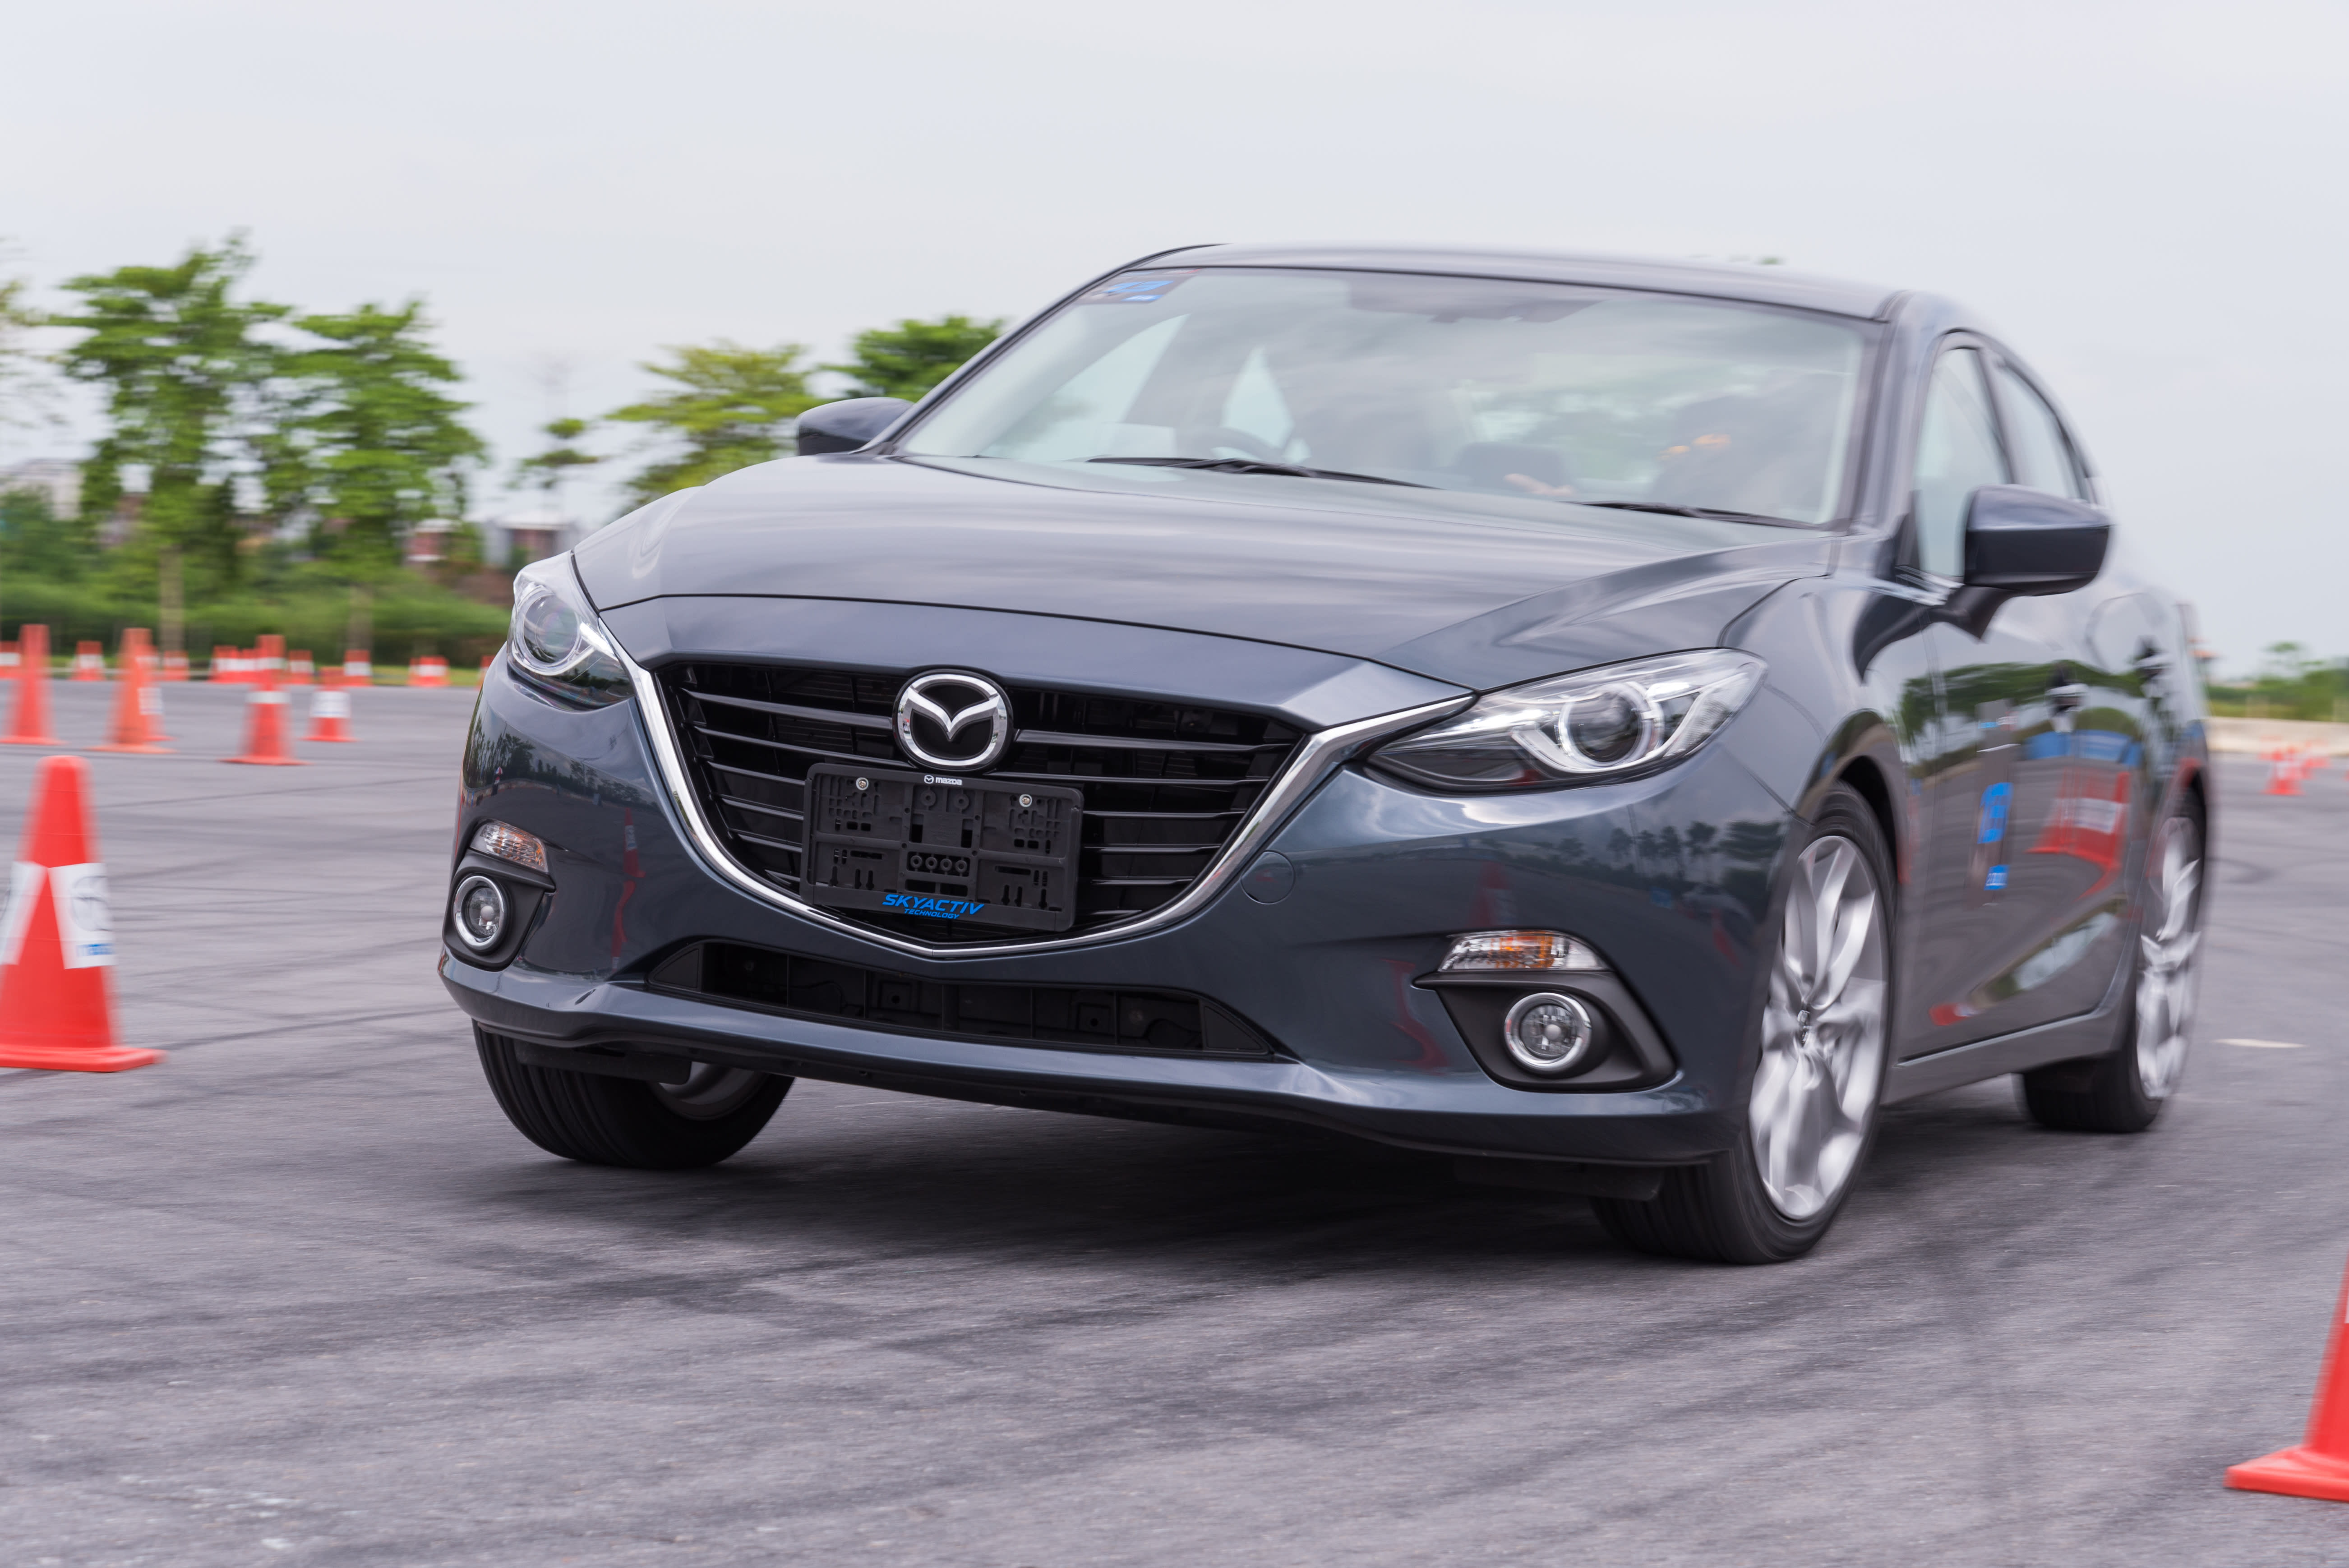 Over 17,000 Mazda3s recalled due to flawed indicator lights